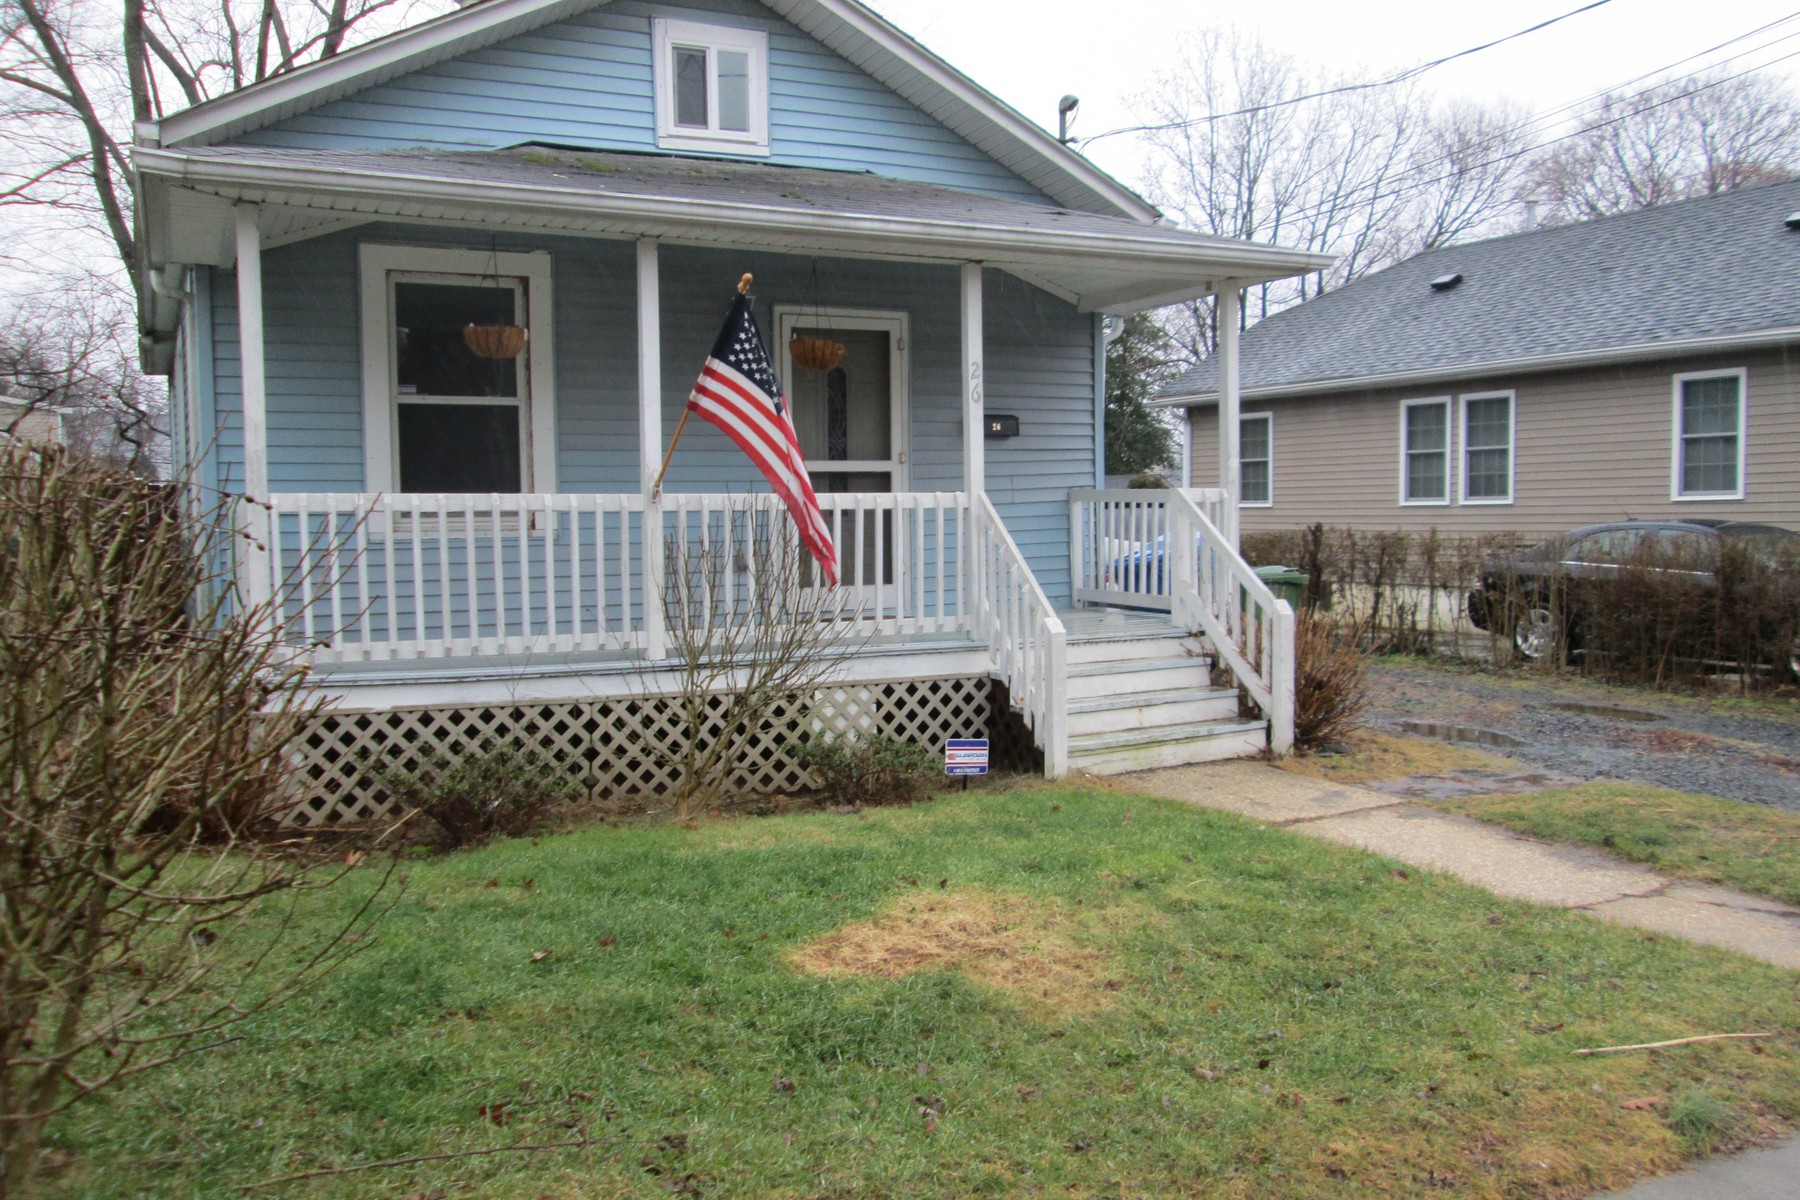 Single Family Home for Sale at Adorable, Affordable and Move in able 26 Cherry St Tinton Falls, New Jersey, 07724 United States